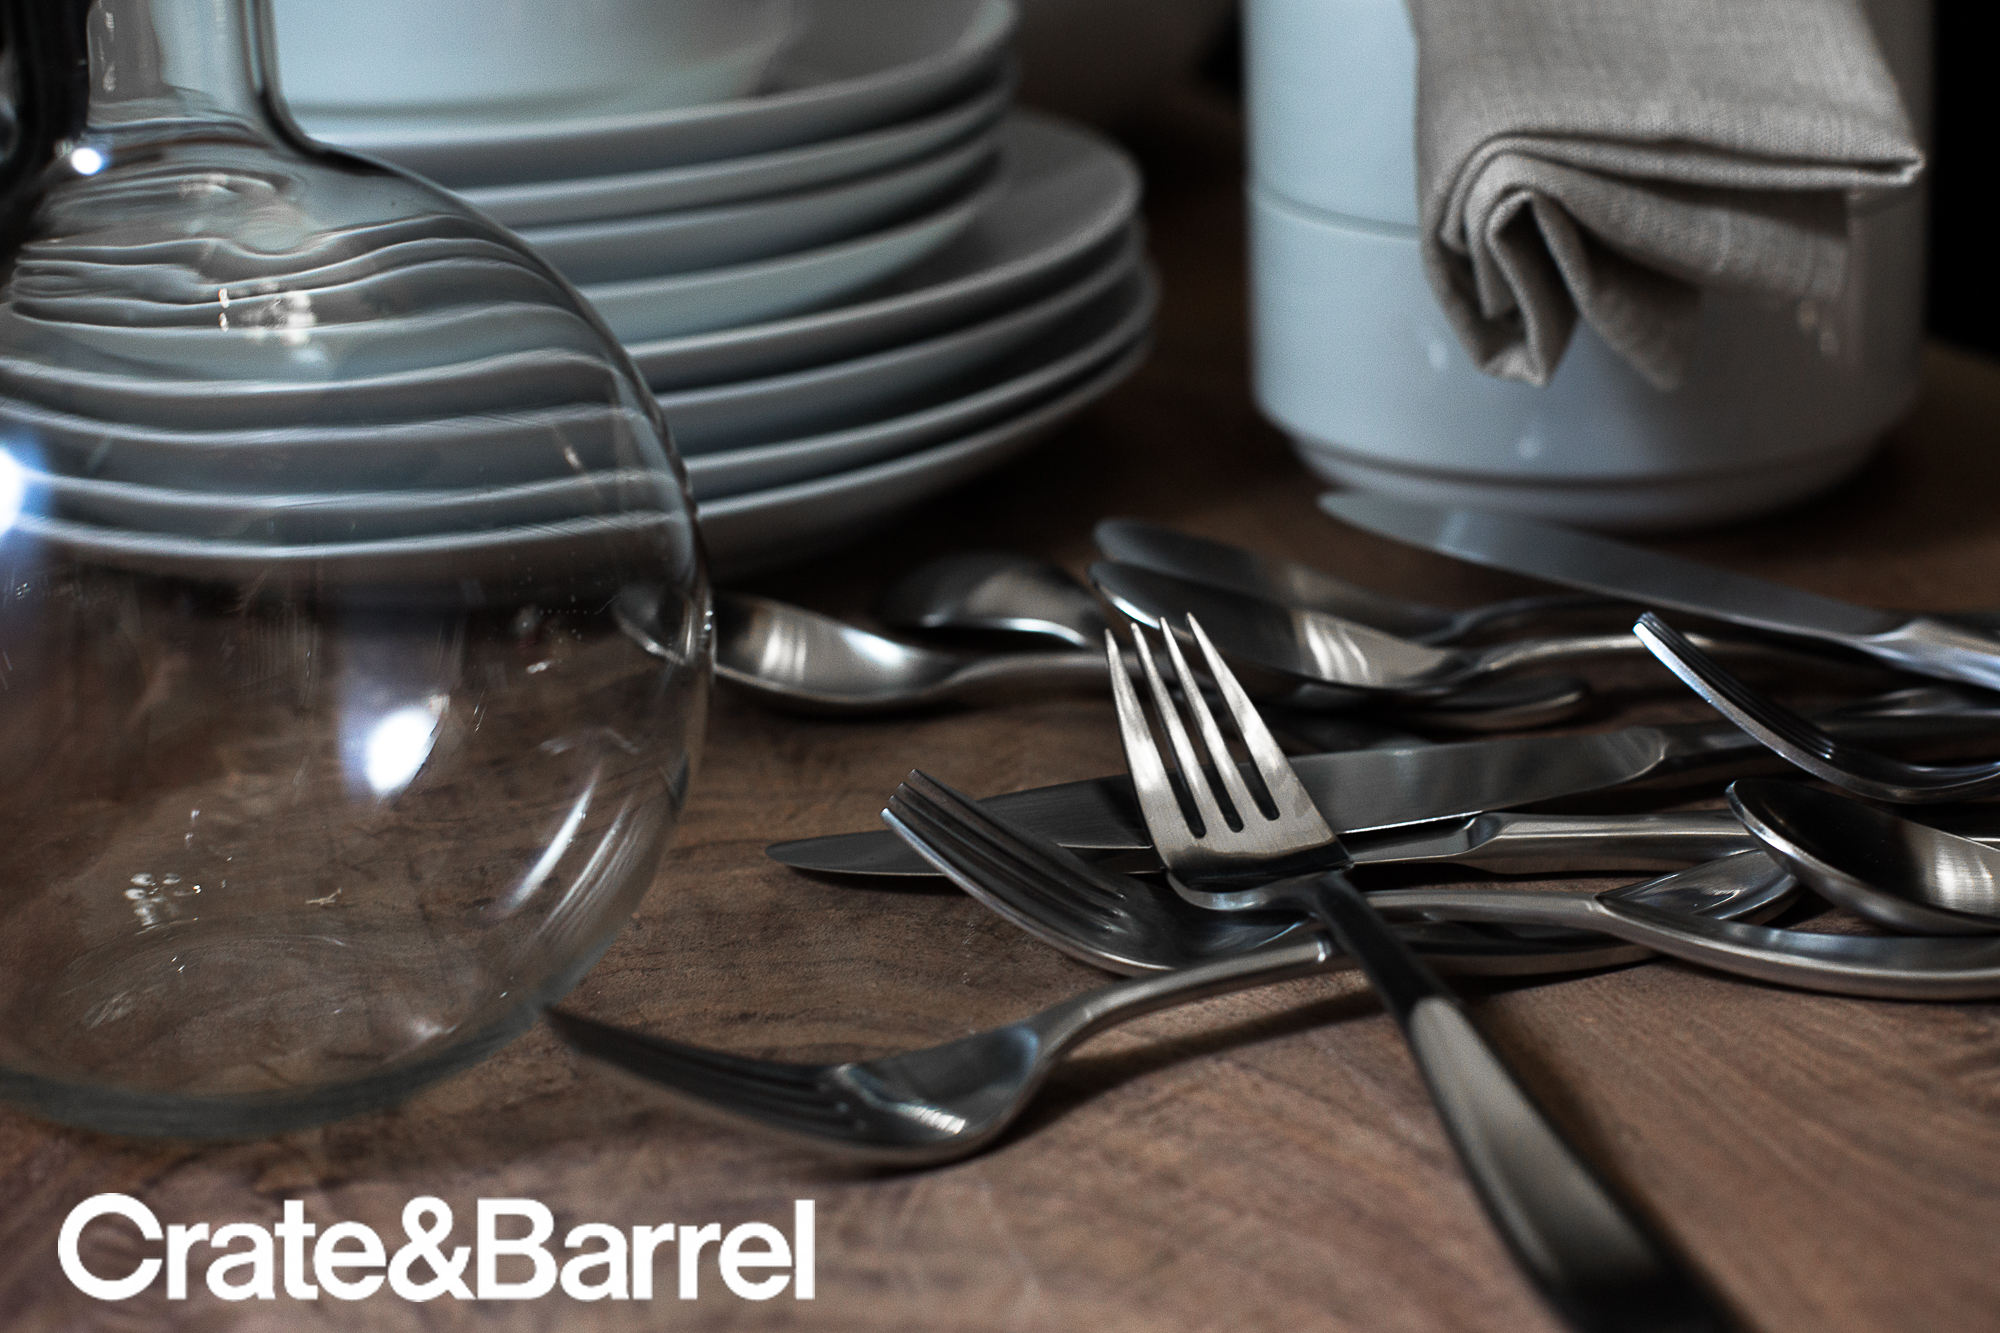 7 DISHWARE_CRATE&BARREL_AD copy.jpg